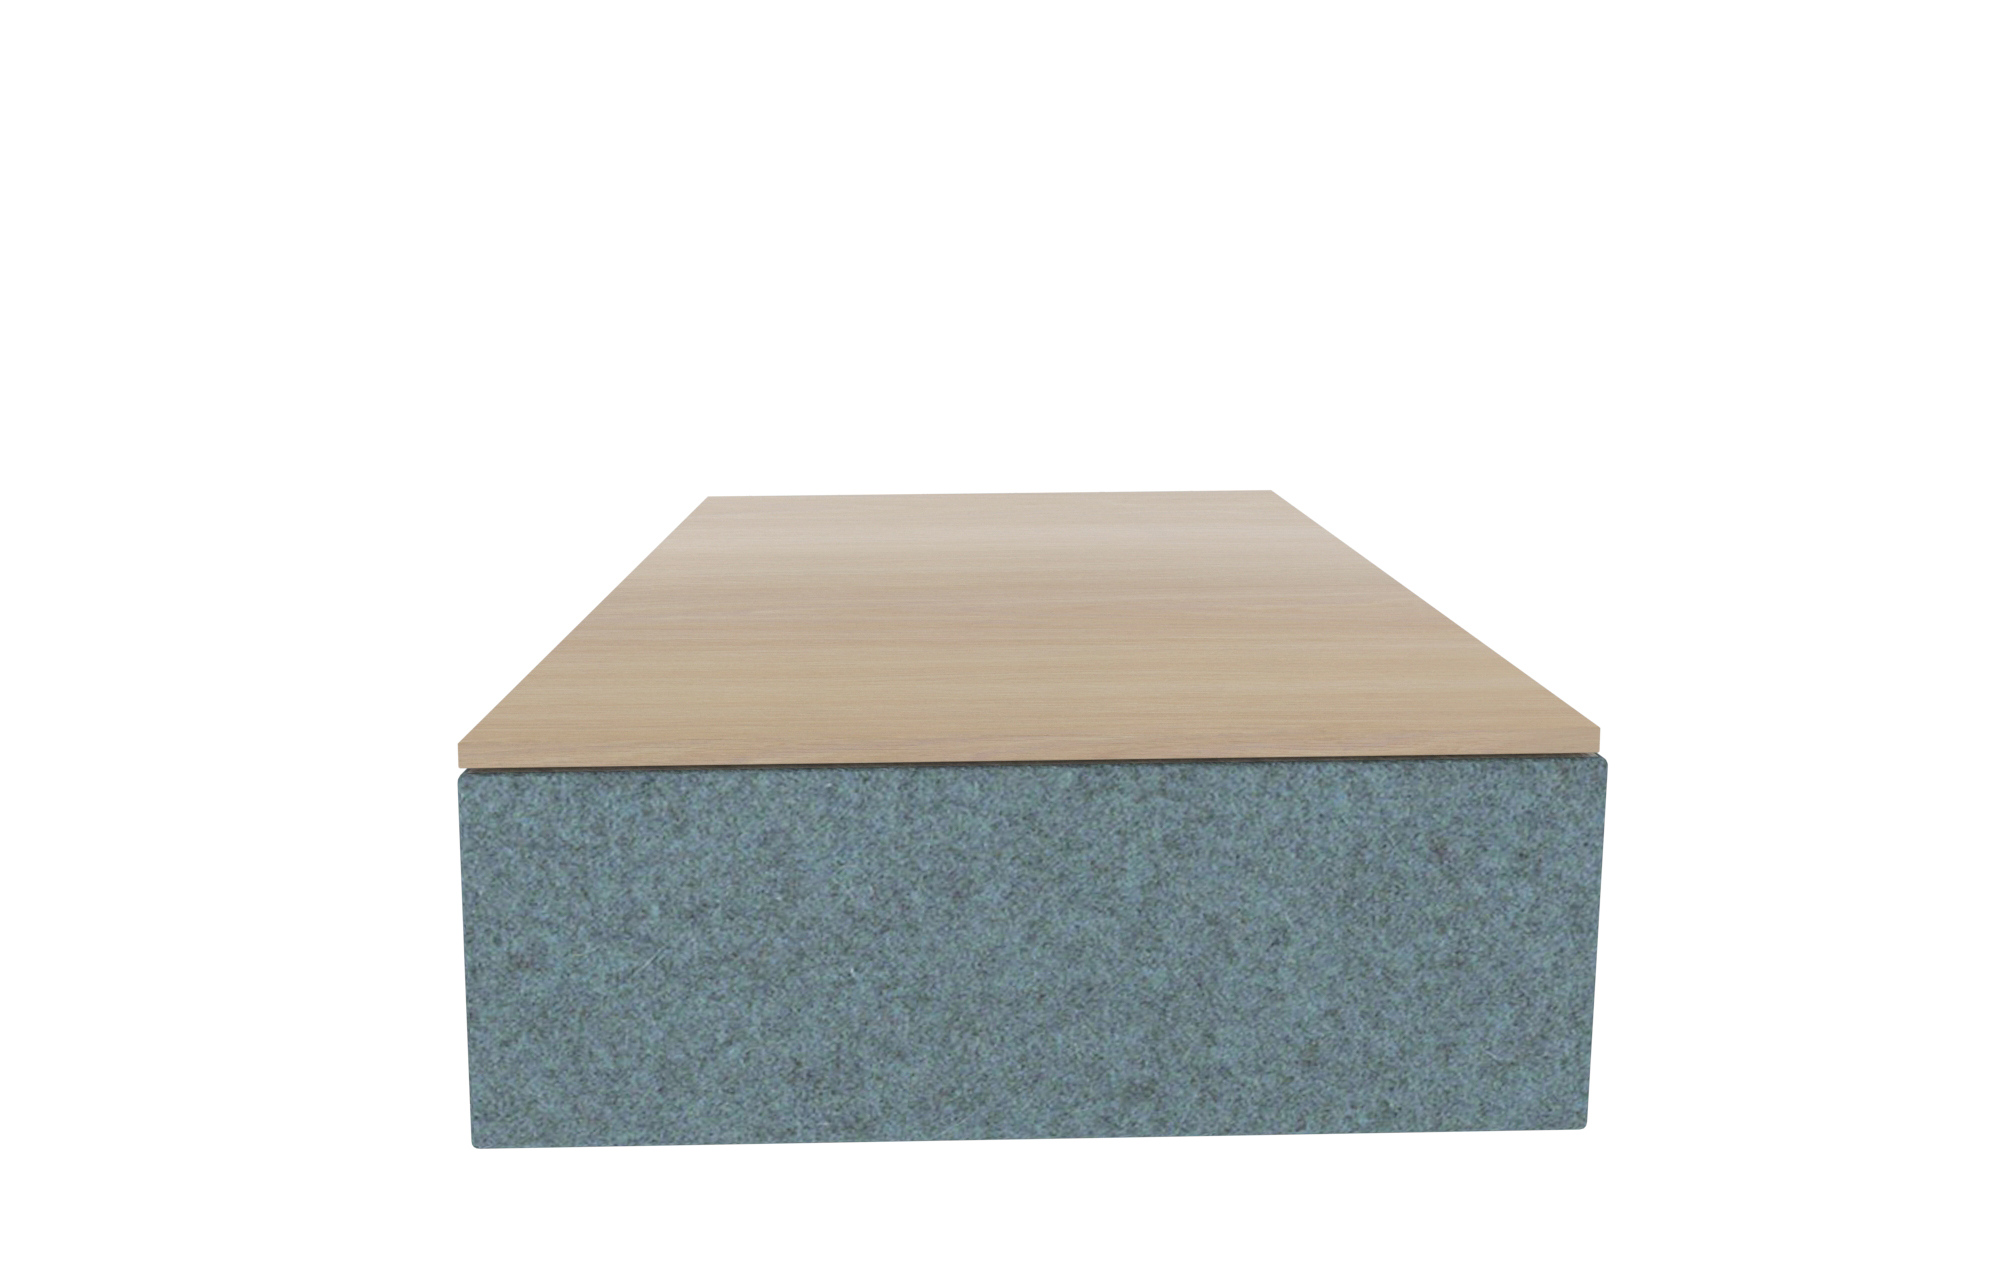 Hickory Contract UPpJr. Modular Lounge 4021-1S-T